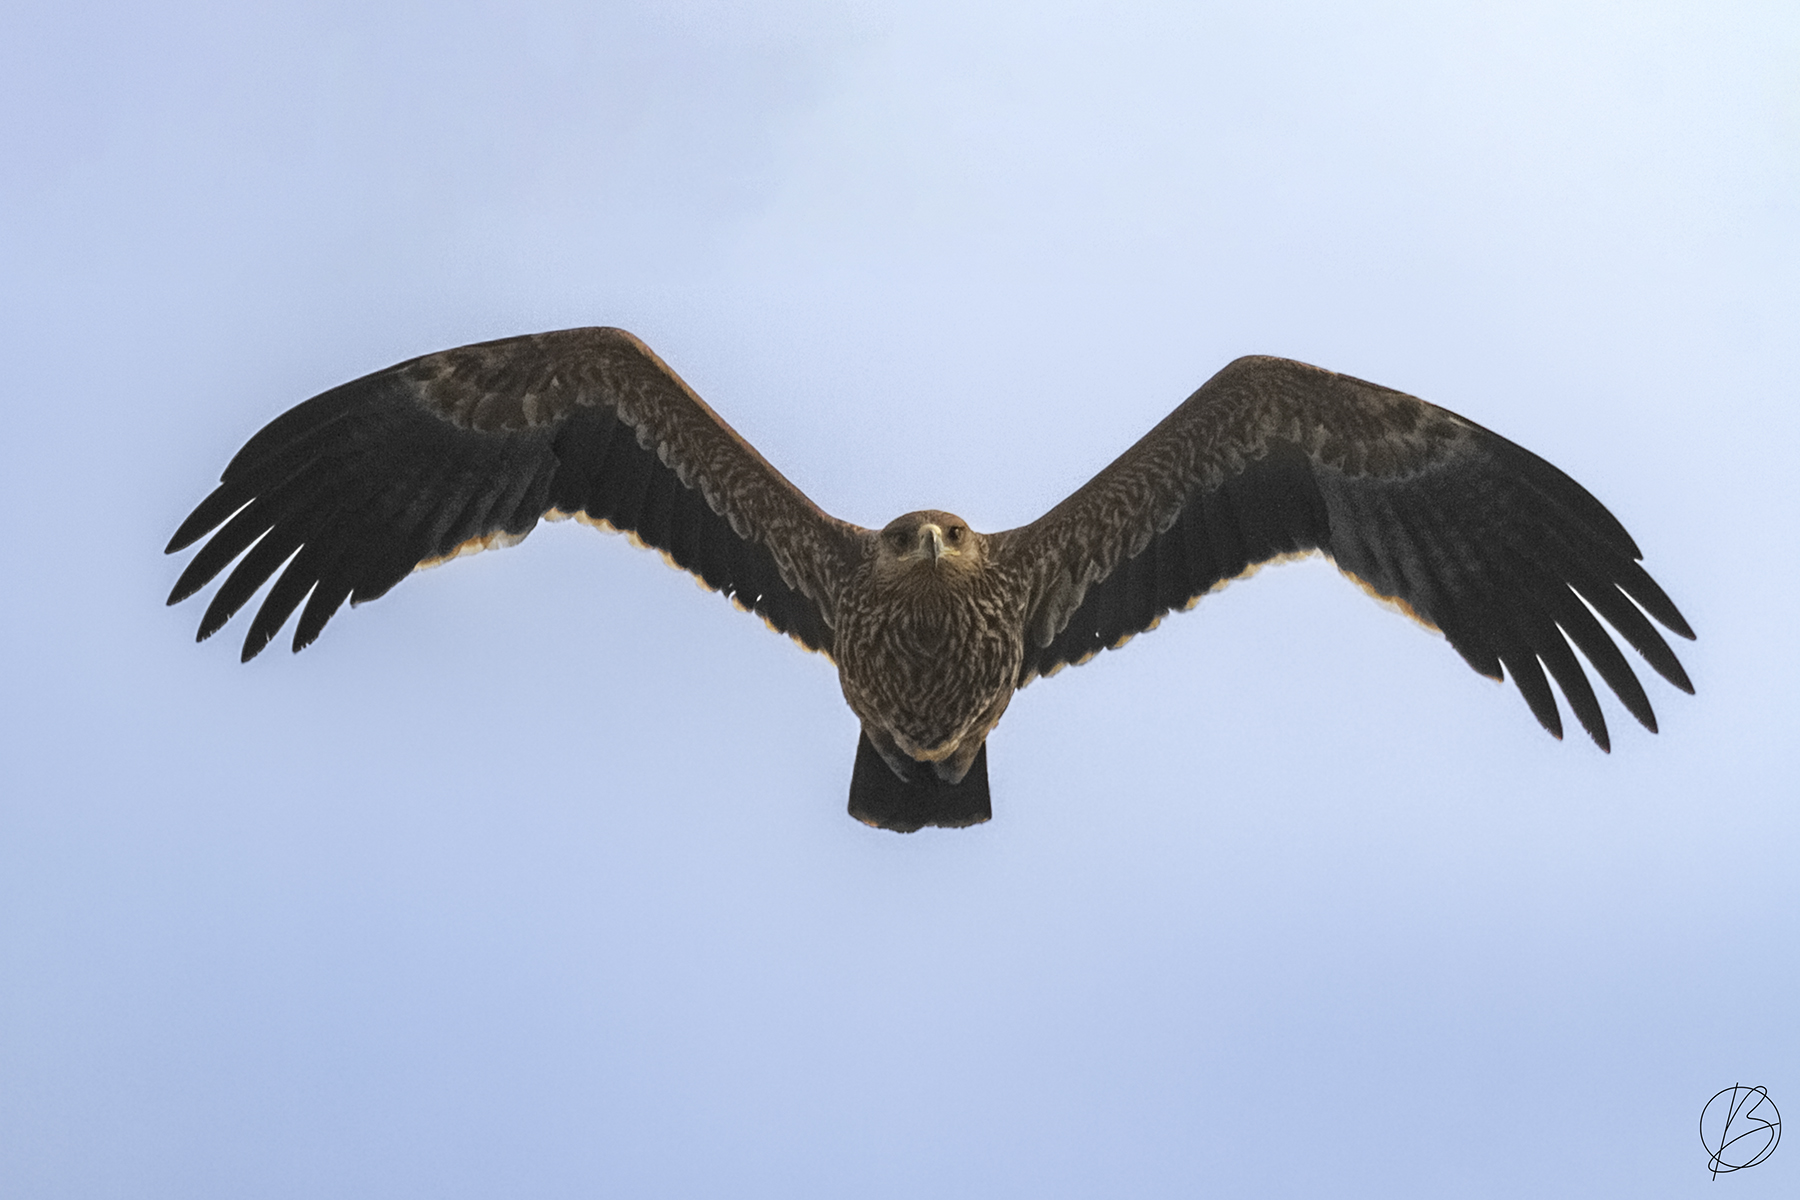 Eastern Imperial Eagle immature in flight